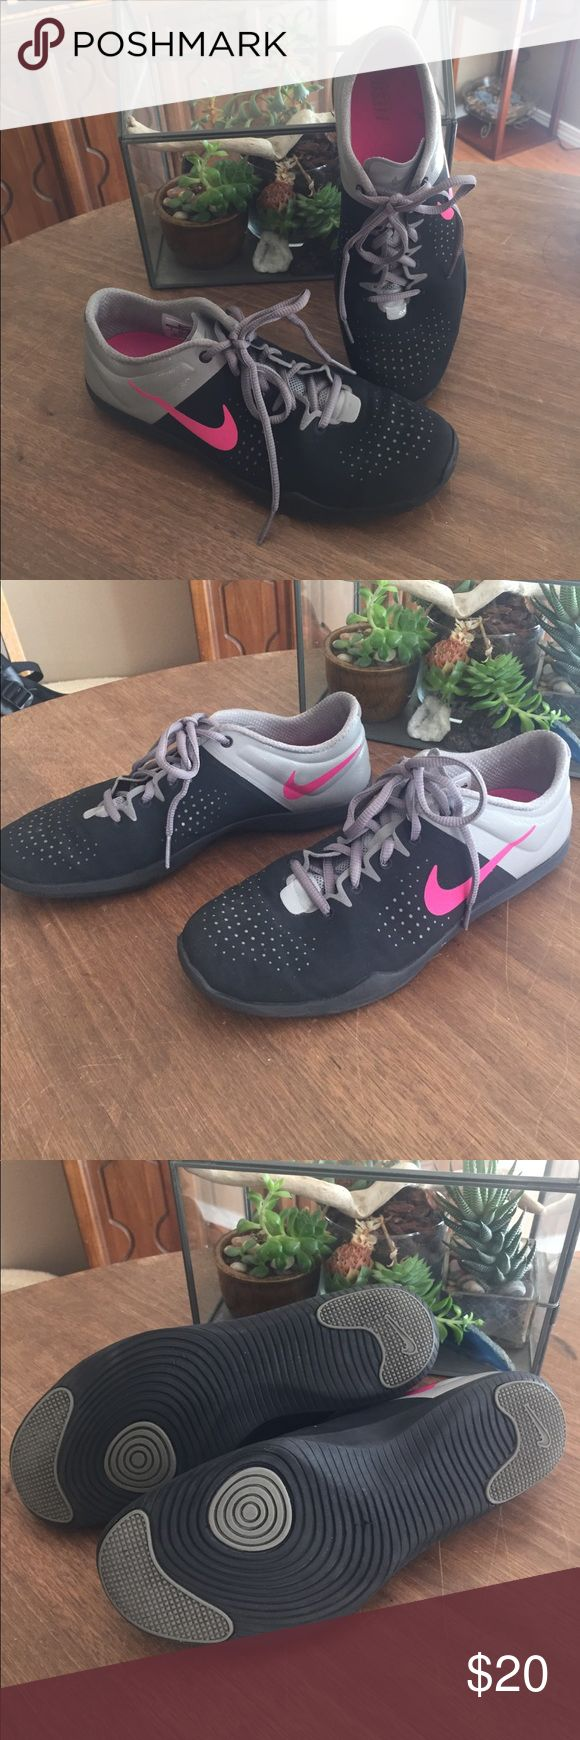 NIKE dance tennis shoes sz 9 Great lightweight Nike shoes, perfect for dance classes! Only worn a couple times to/from/at the gym for Zumba and BodyJam classes. Great condition. and perfect colors to go with almost anything. Nike Shoes Athletic Shoes